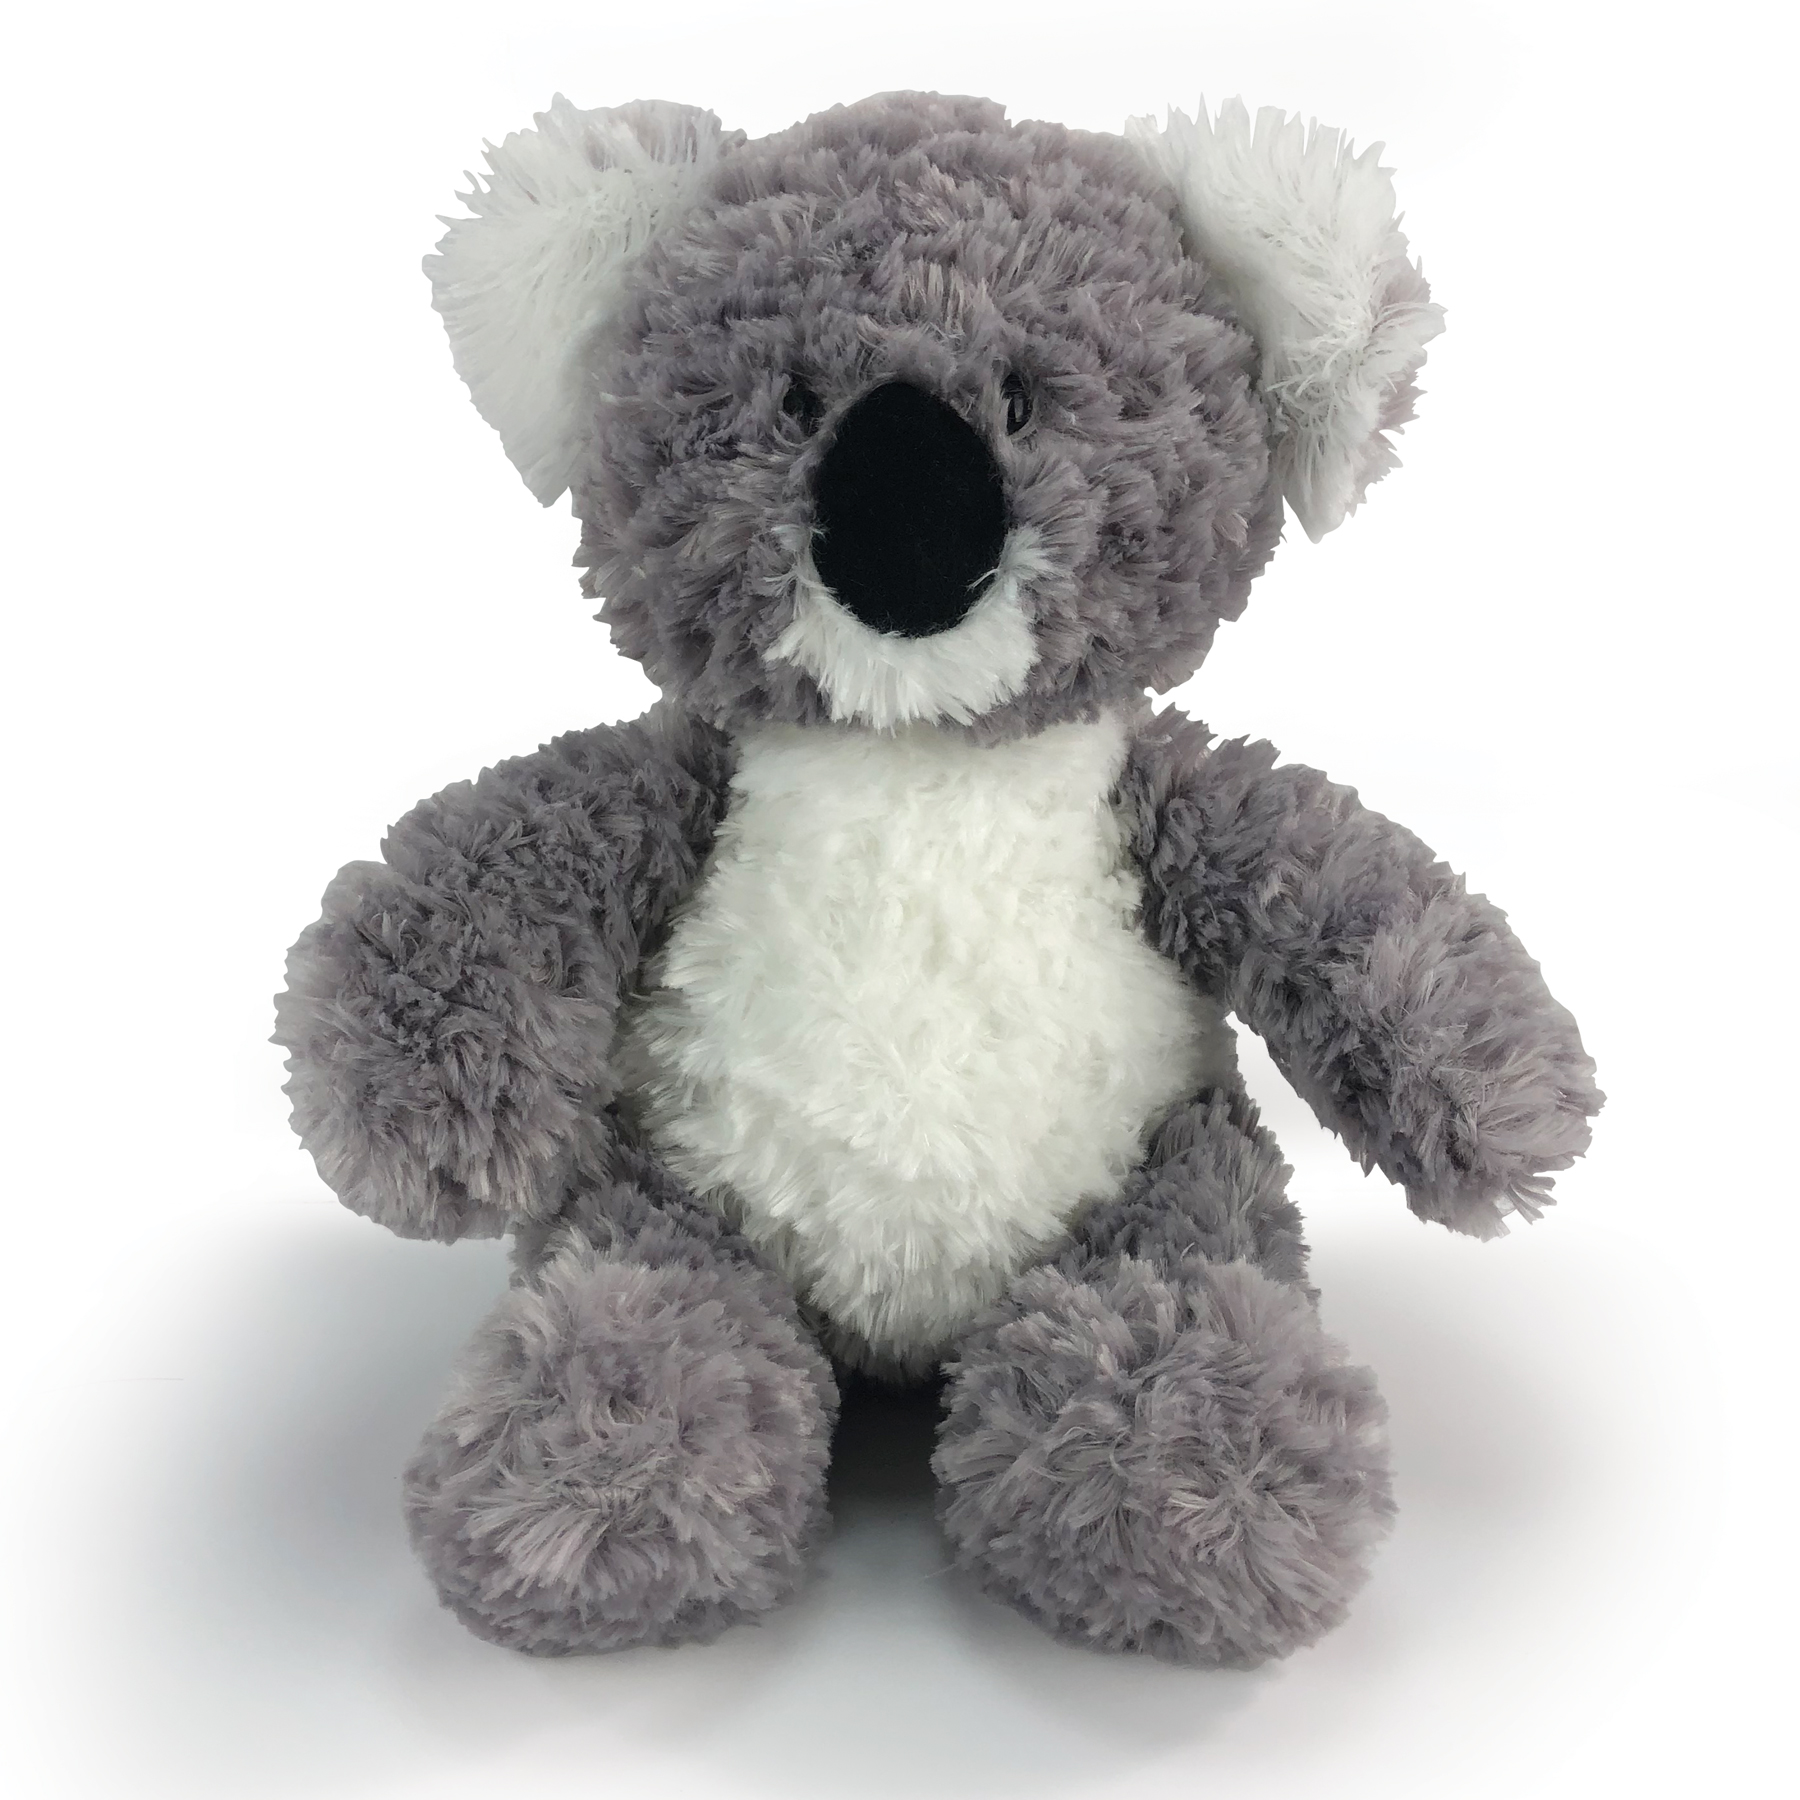 Koala Stuffed Animal | Plush Koala Toy